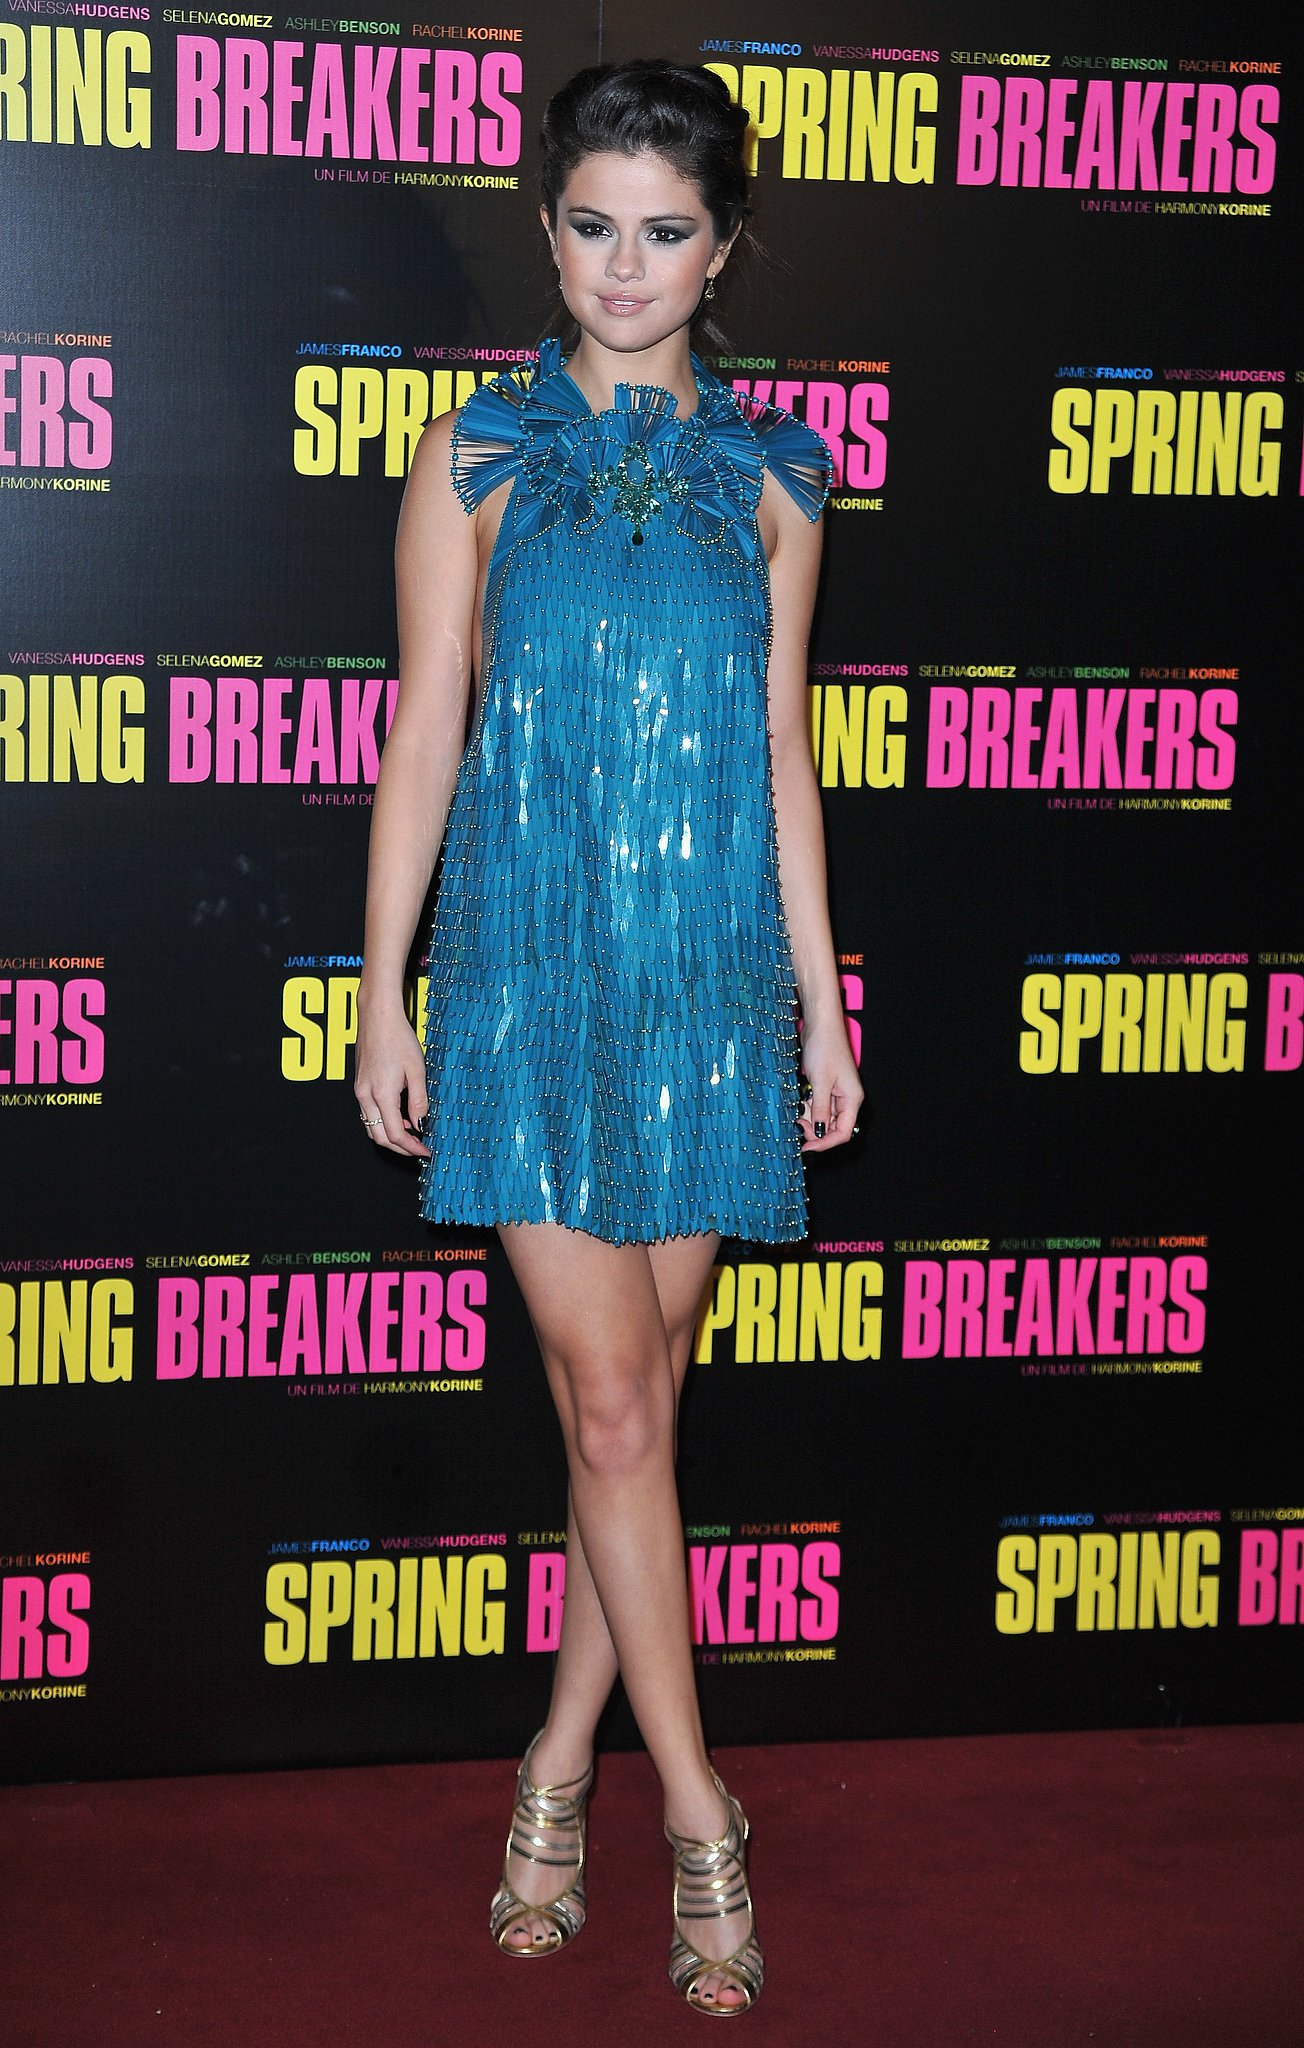 For the Paris premiere of Spring Breakers, Gomez dazzled in a turquoise sequin Gucci mini complete with a fanned ruffle collar and extra beaded embellishments.